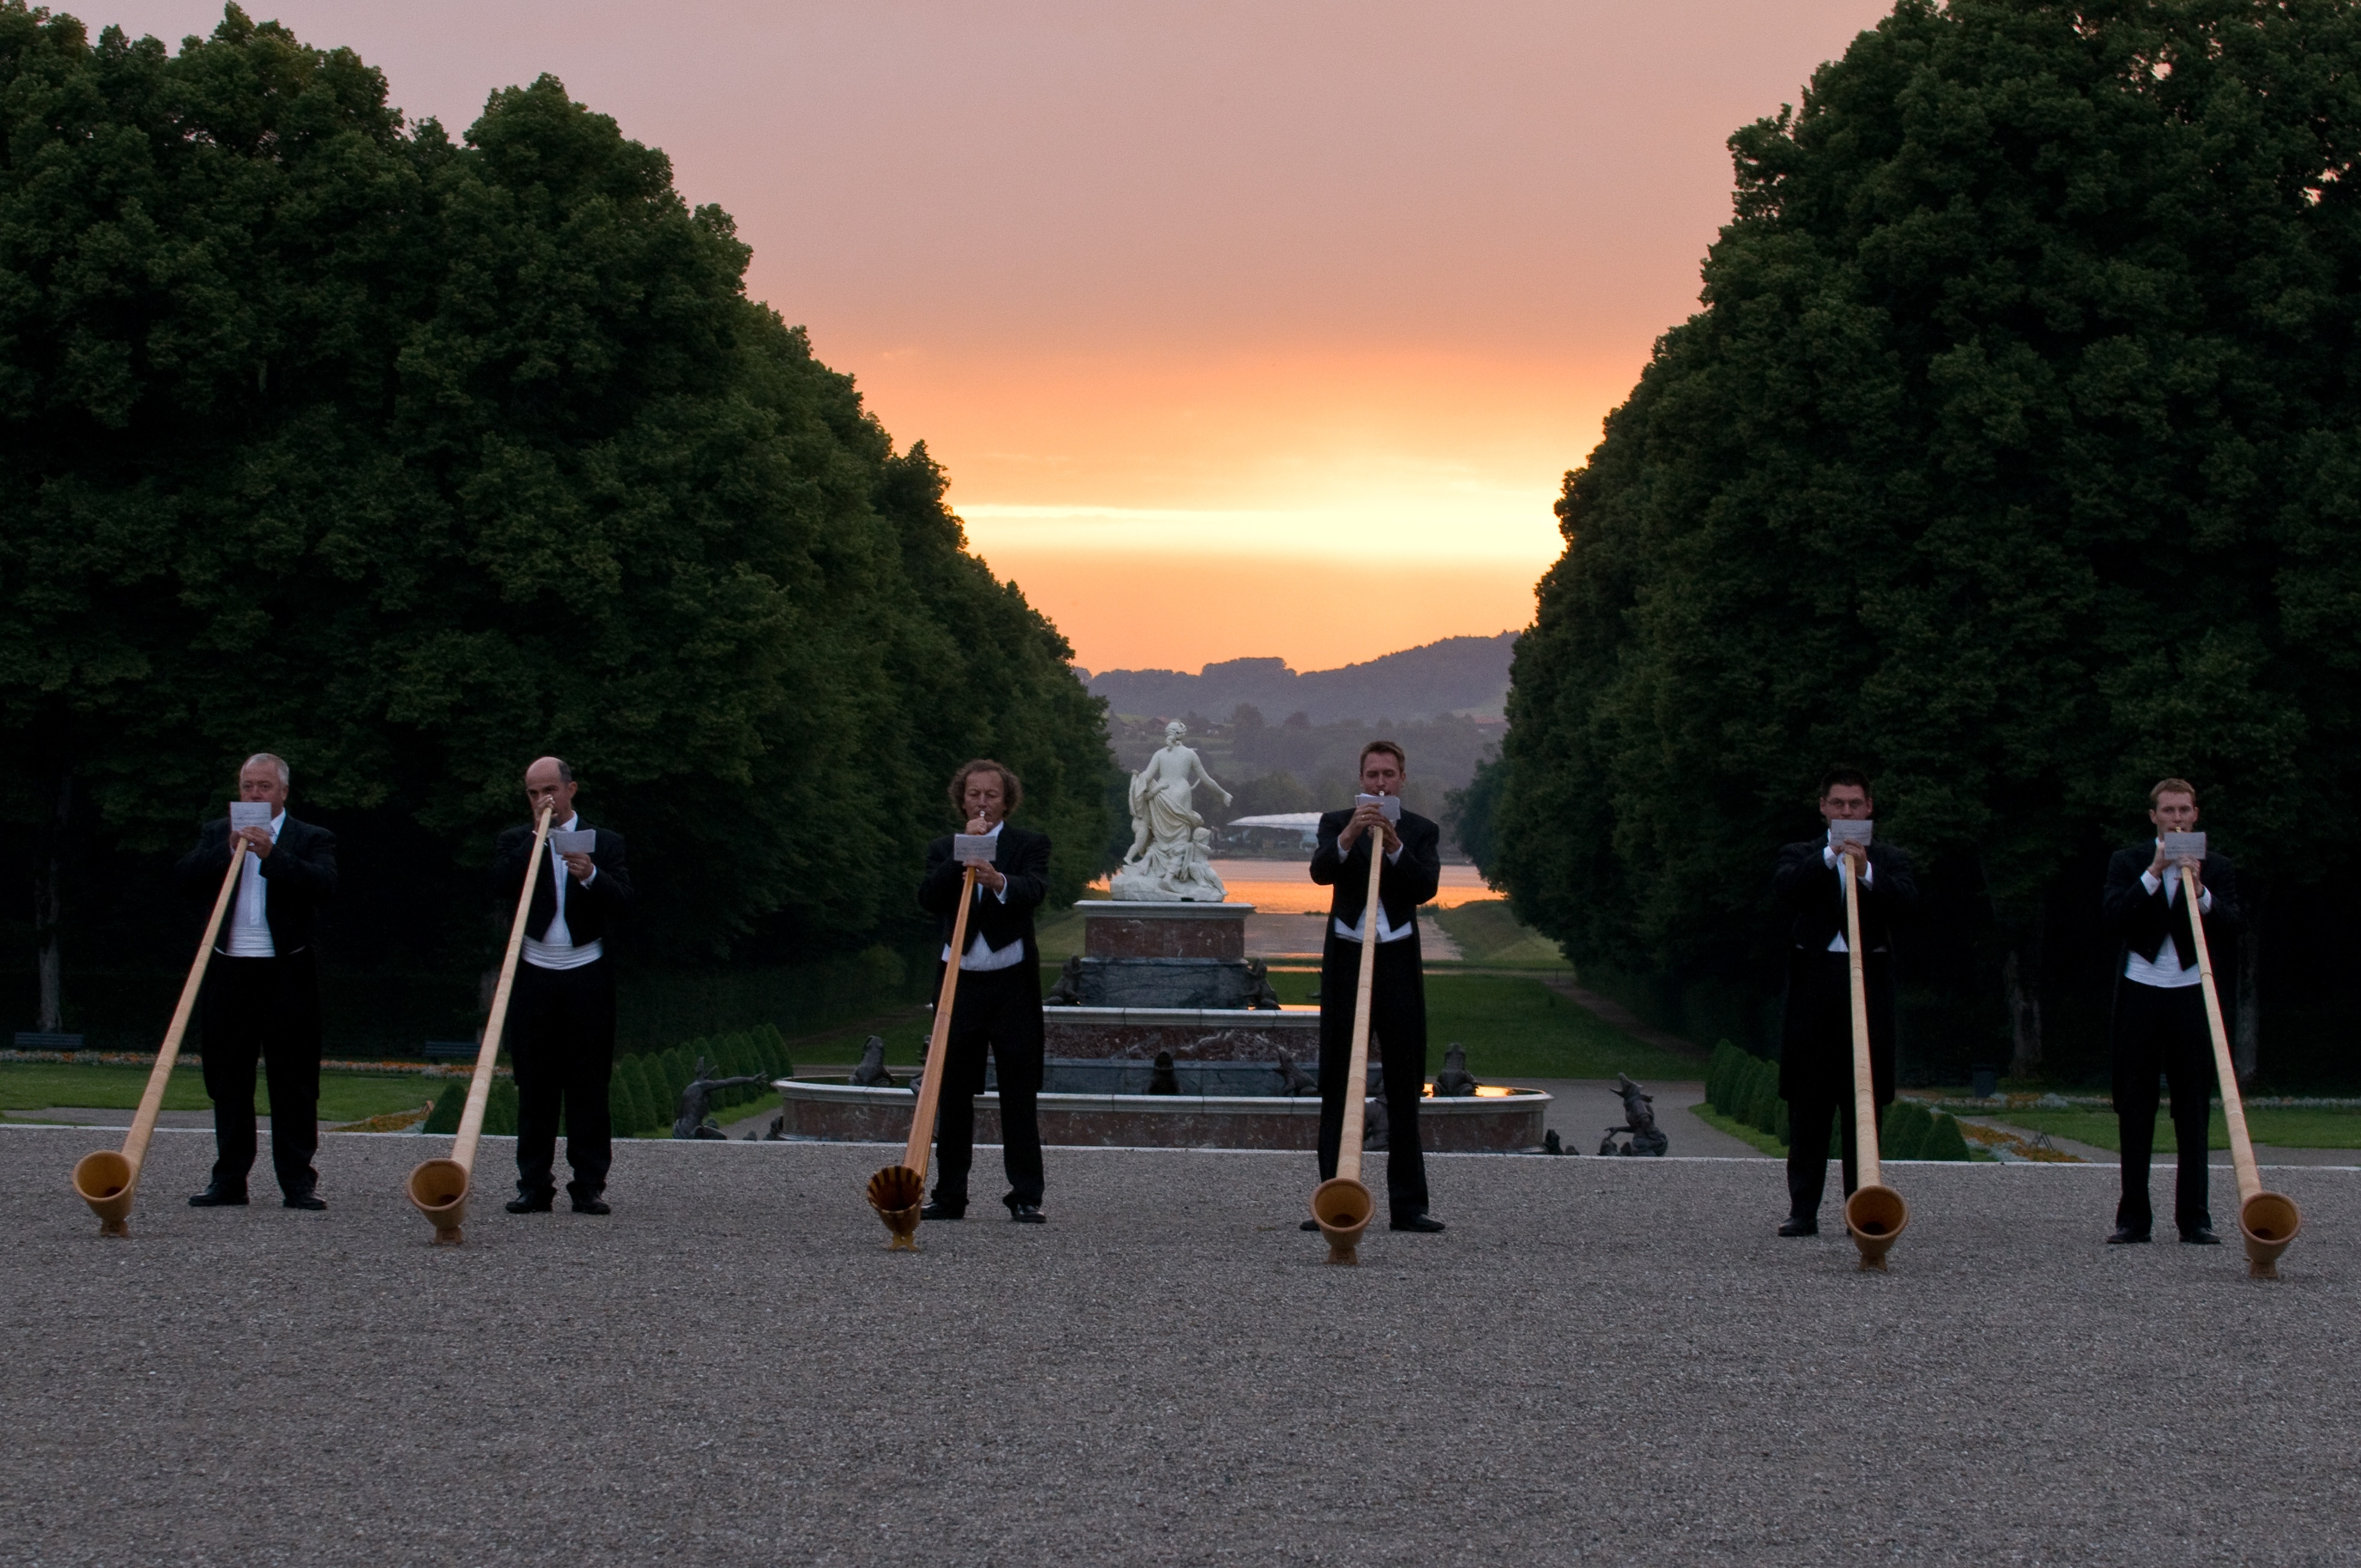 Herrenchiemsee in Germany - alpenhorns performance at intermission